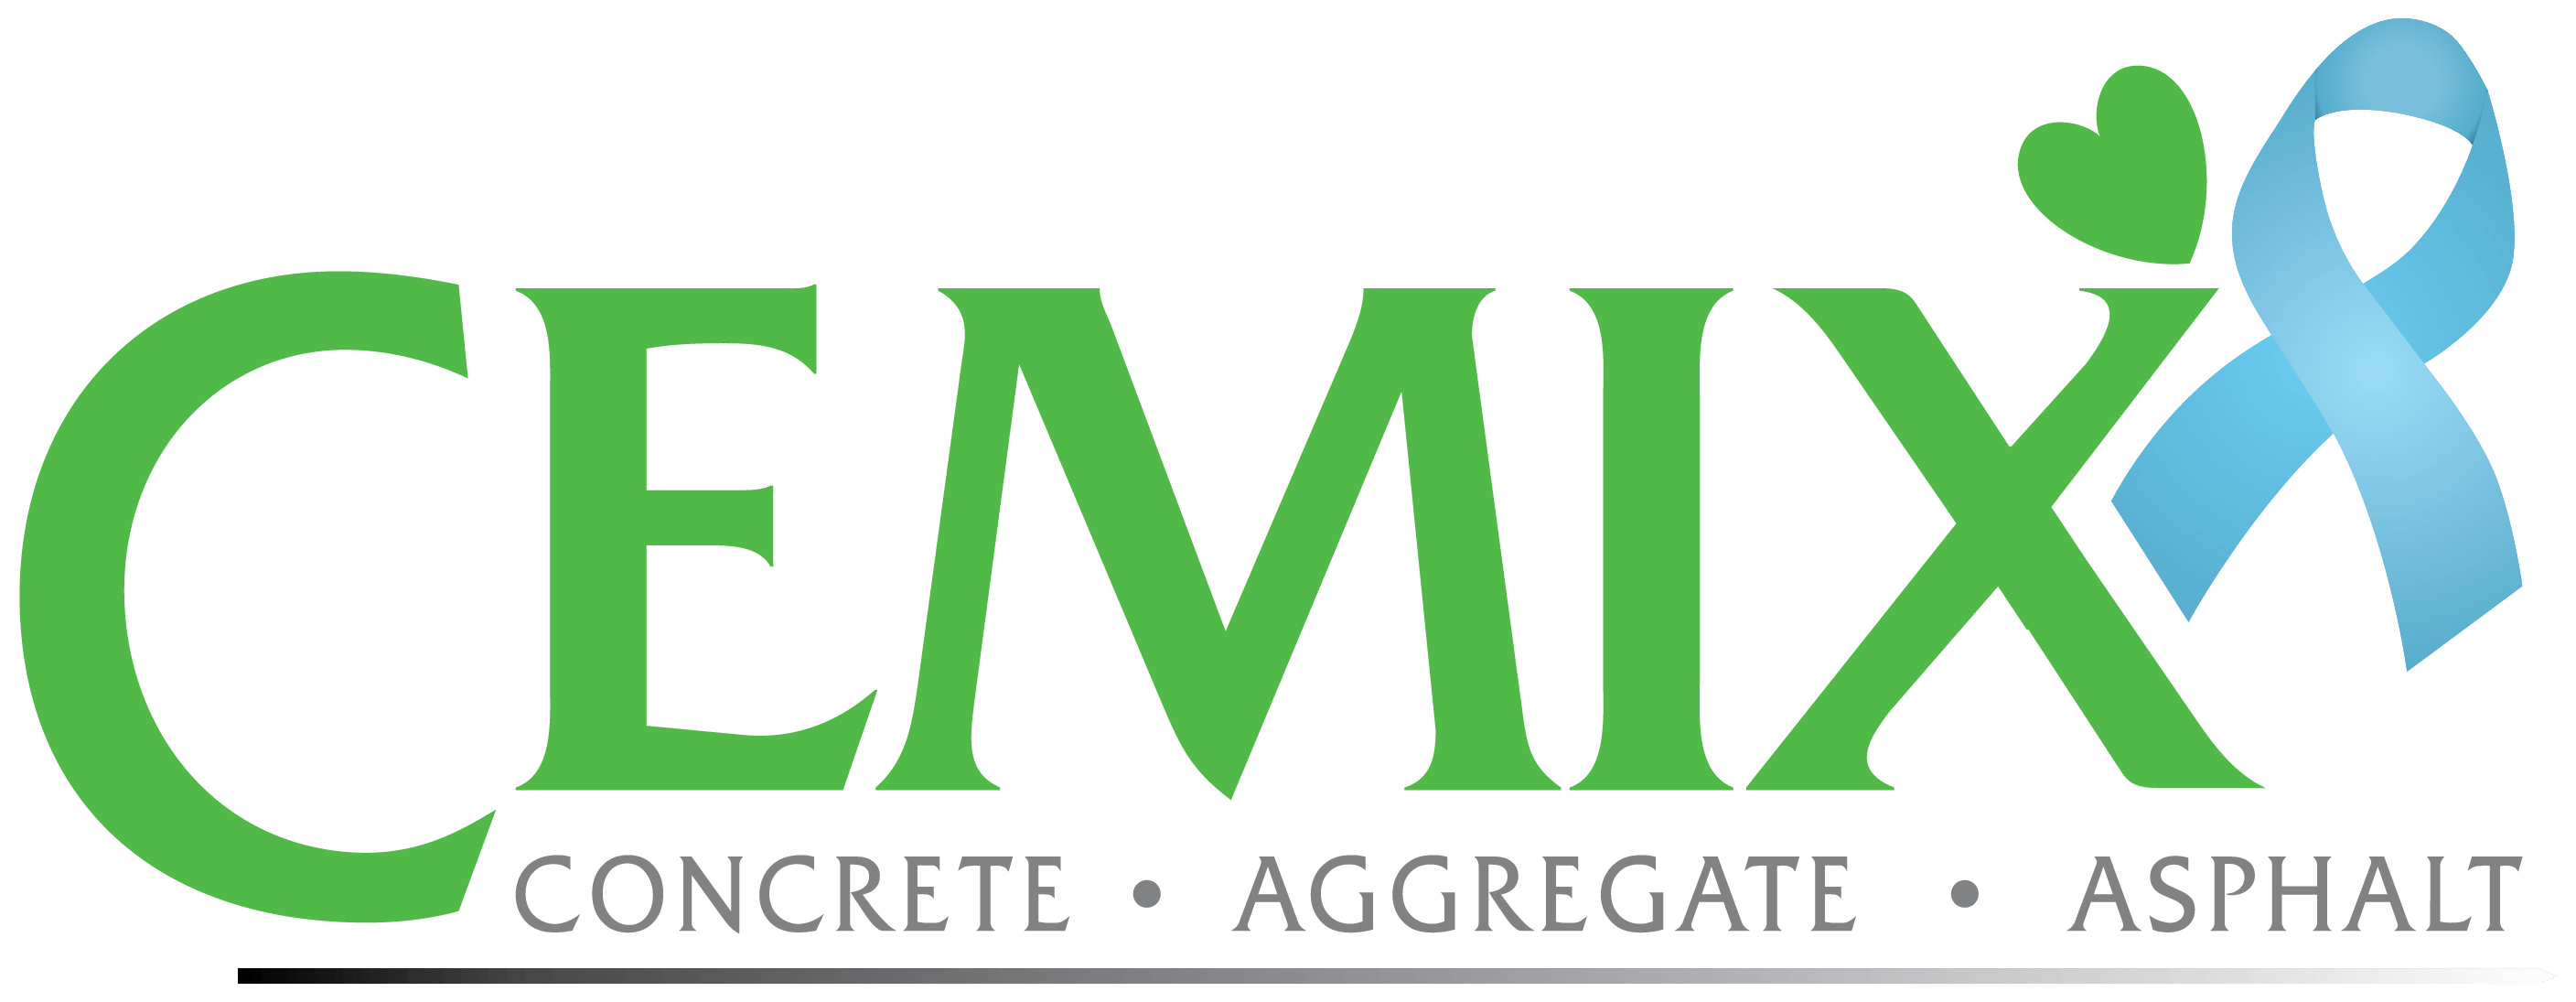 Cemix NEW Logo Prostate Cancer